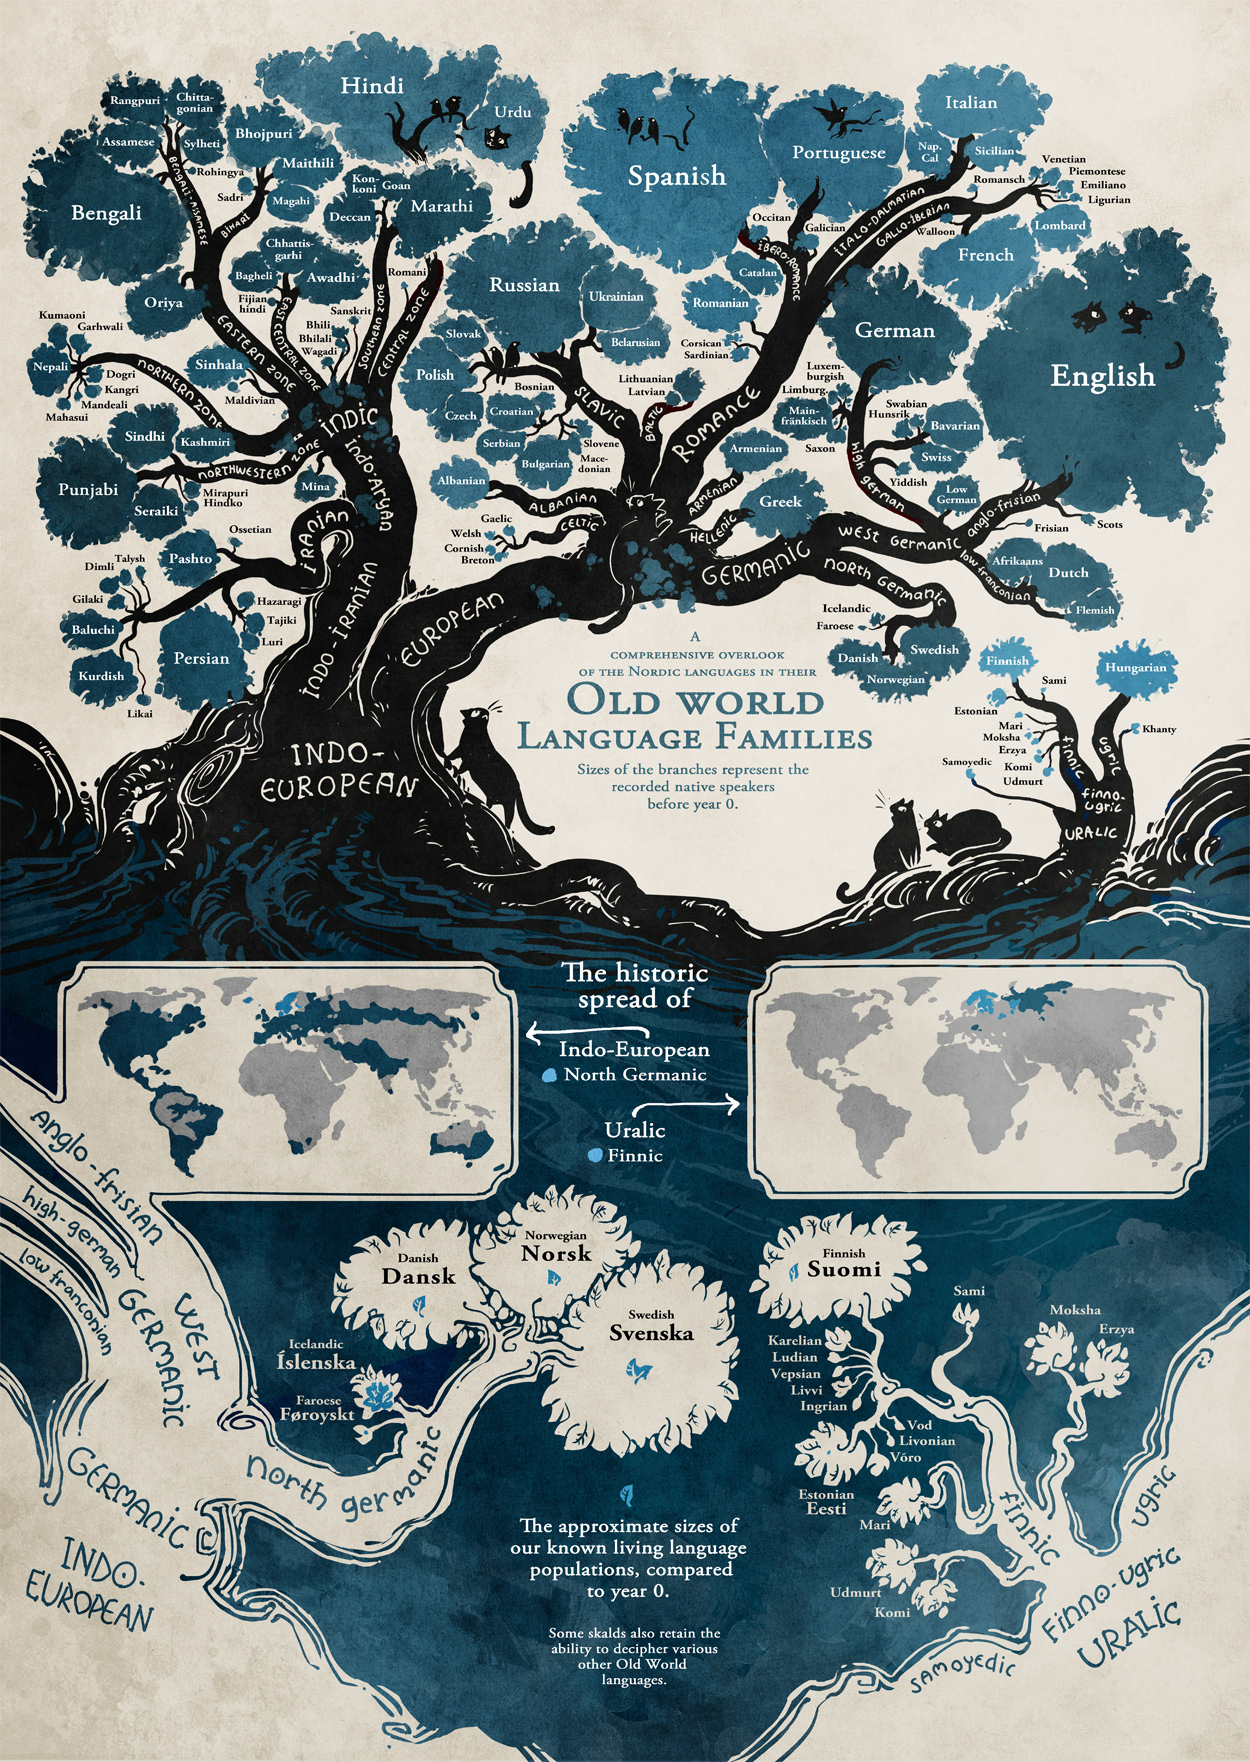 The Tree of Languages Illustrated in a Big, Beautiful Infographic ...